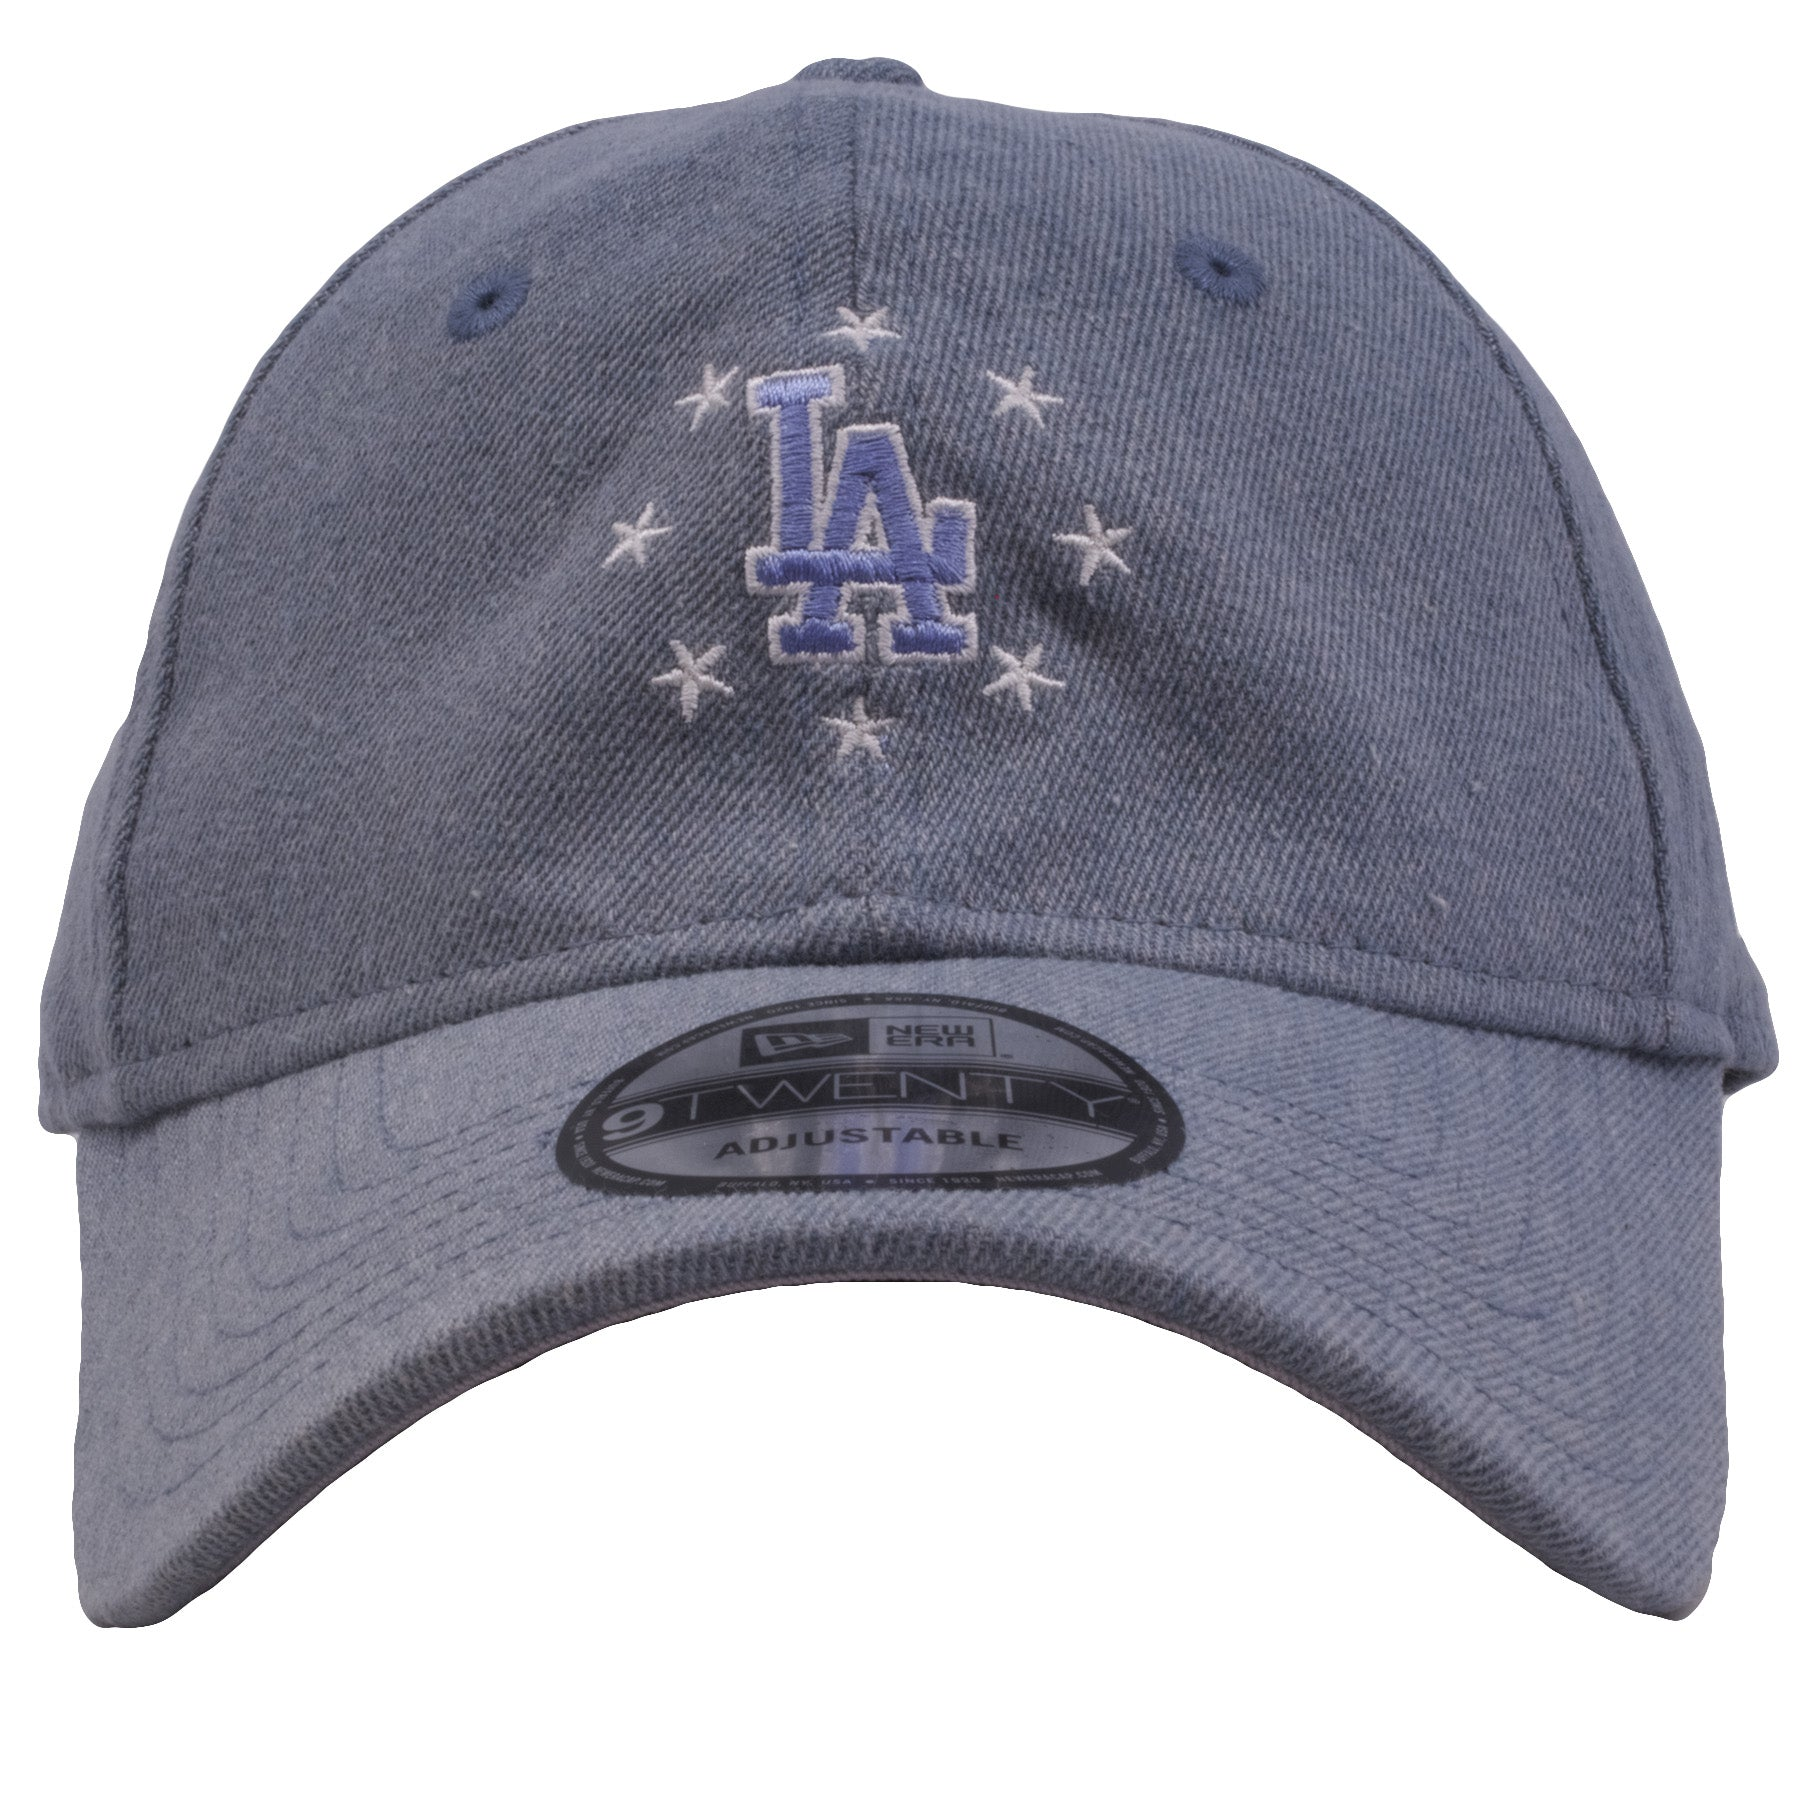 3c0c2875 Los Angeles Dodgers USA Pride Denim Adjustable Dad Hat